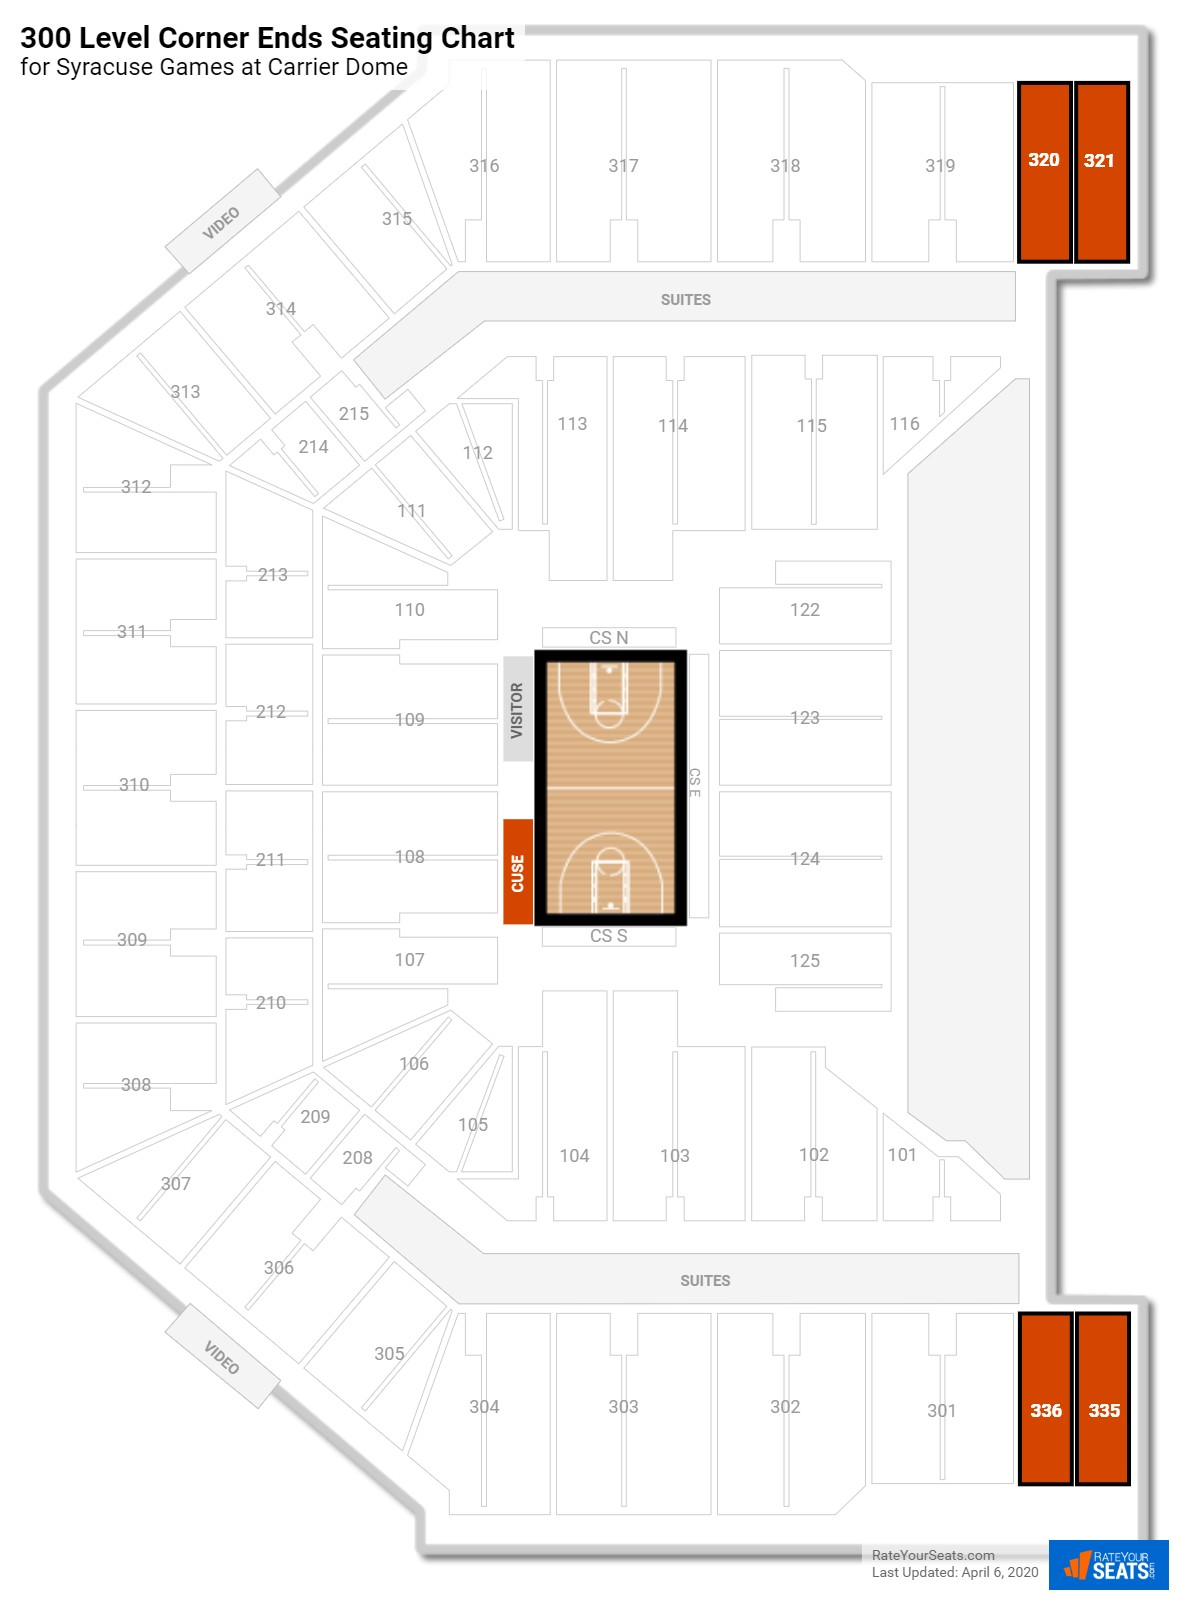 Carrier Dome 300 Level Corner Ends seating chart